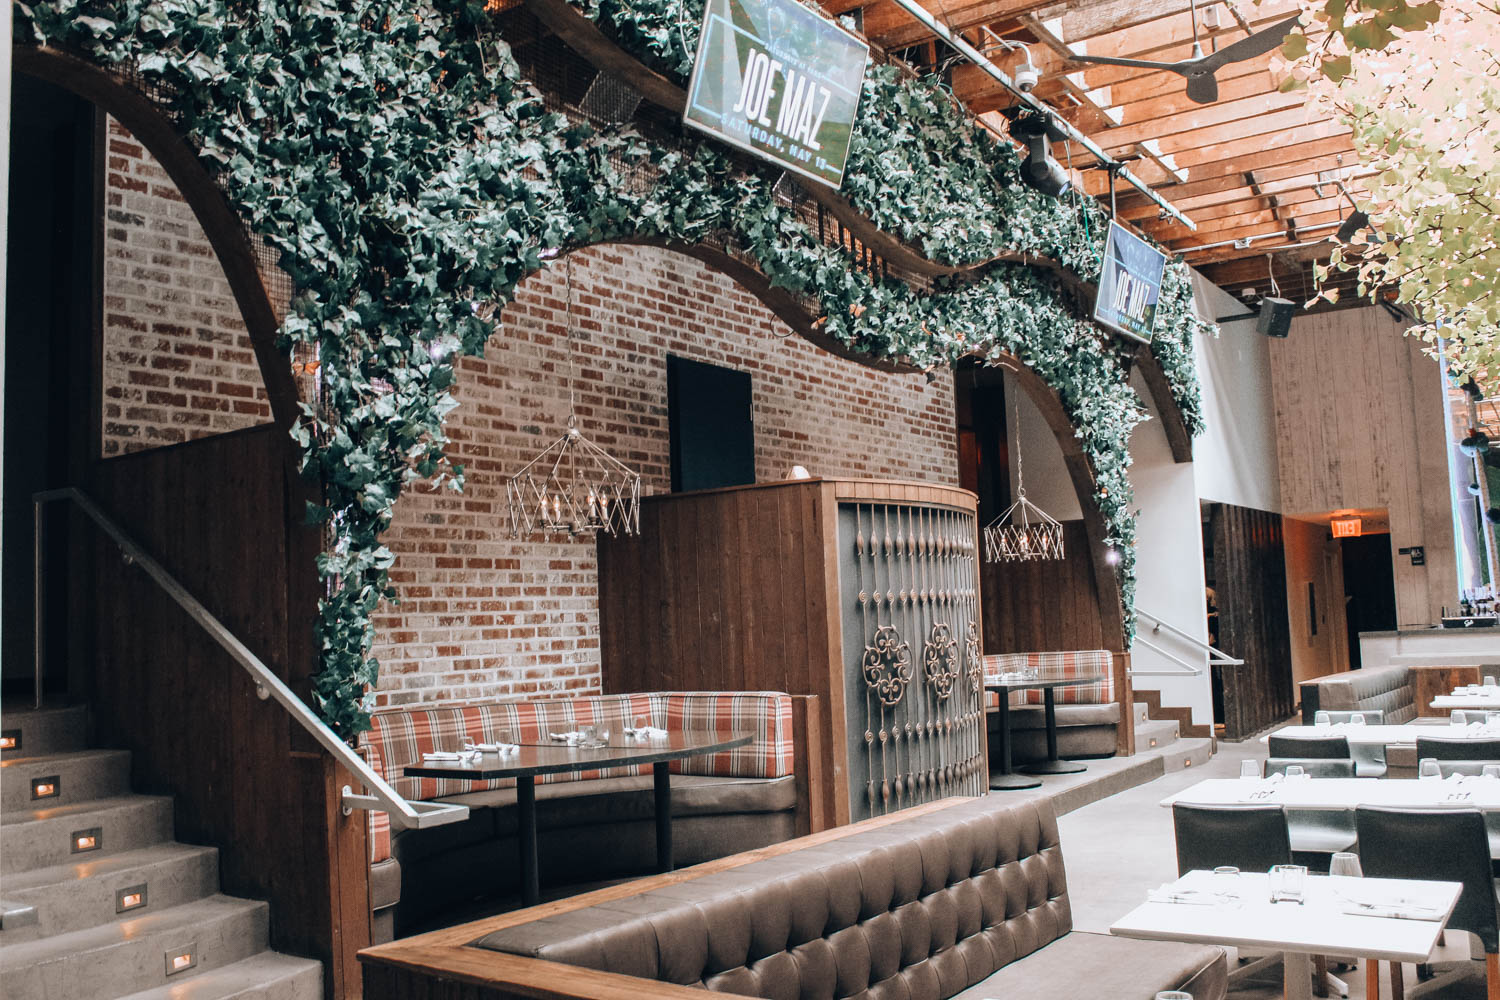 travel-guide-san-diego-recommendations-parq-restaurant3